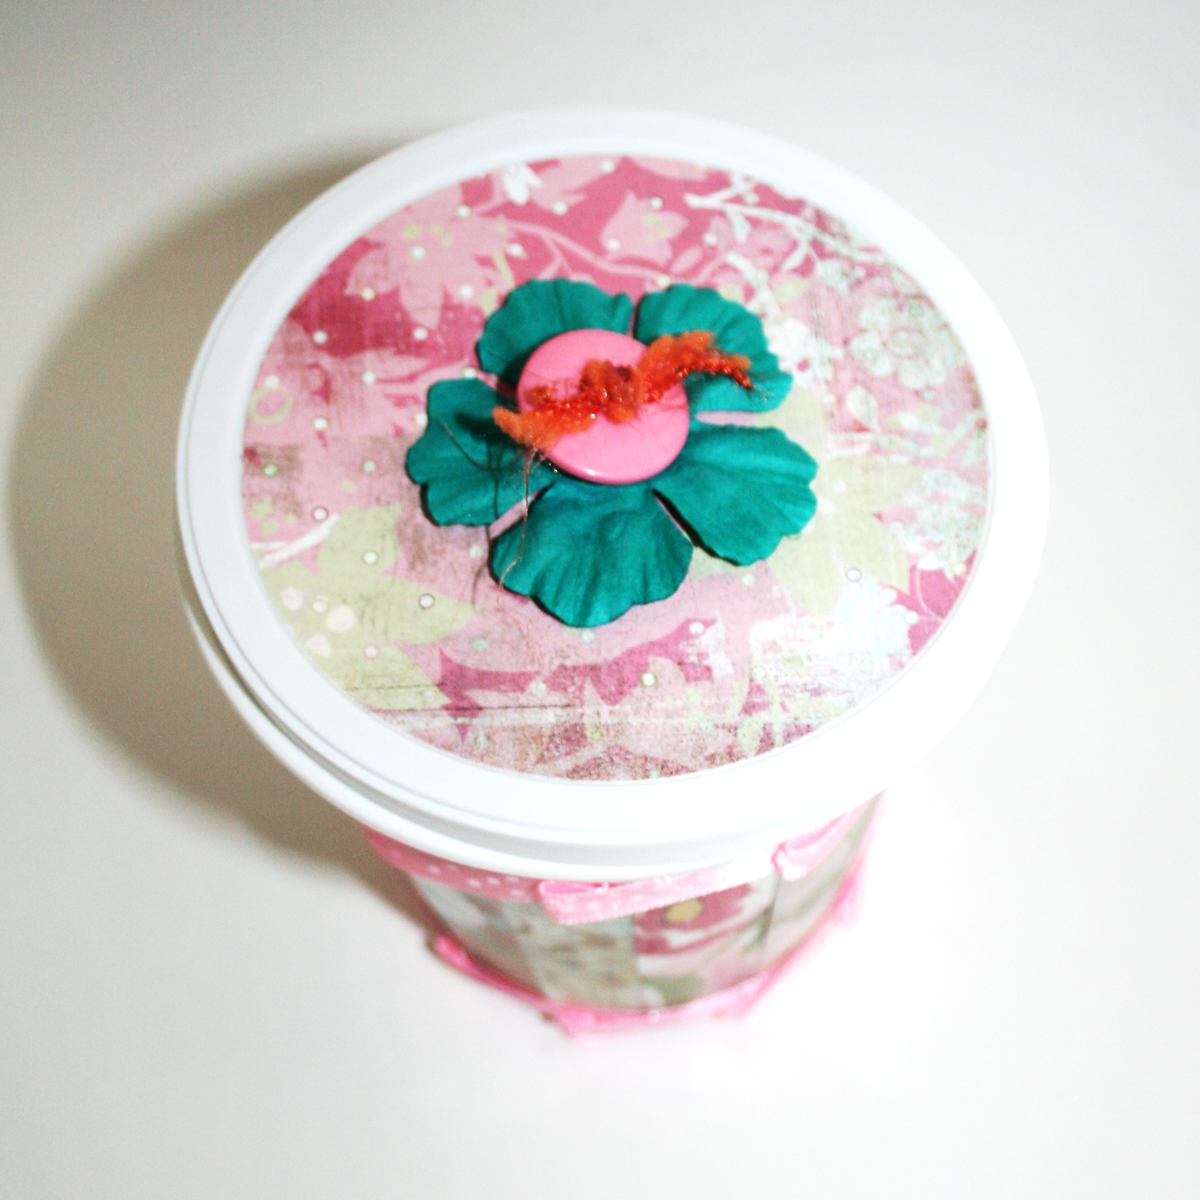 Upcycled Yogurt Container